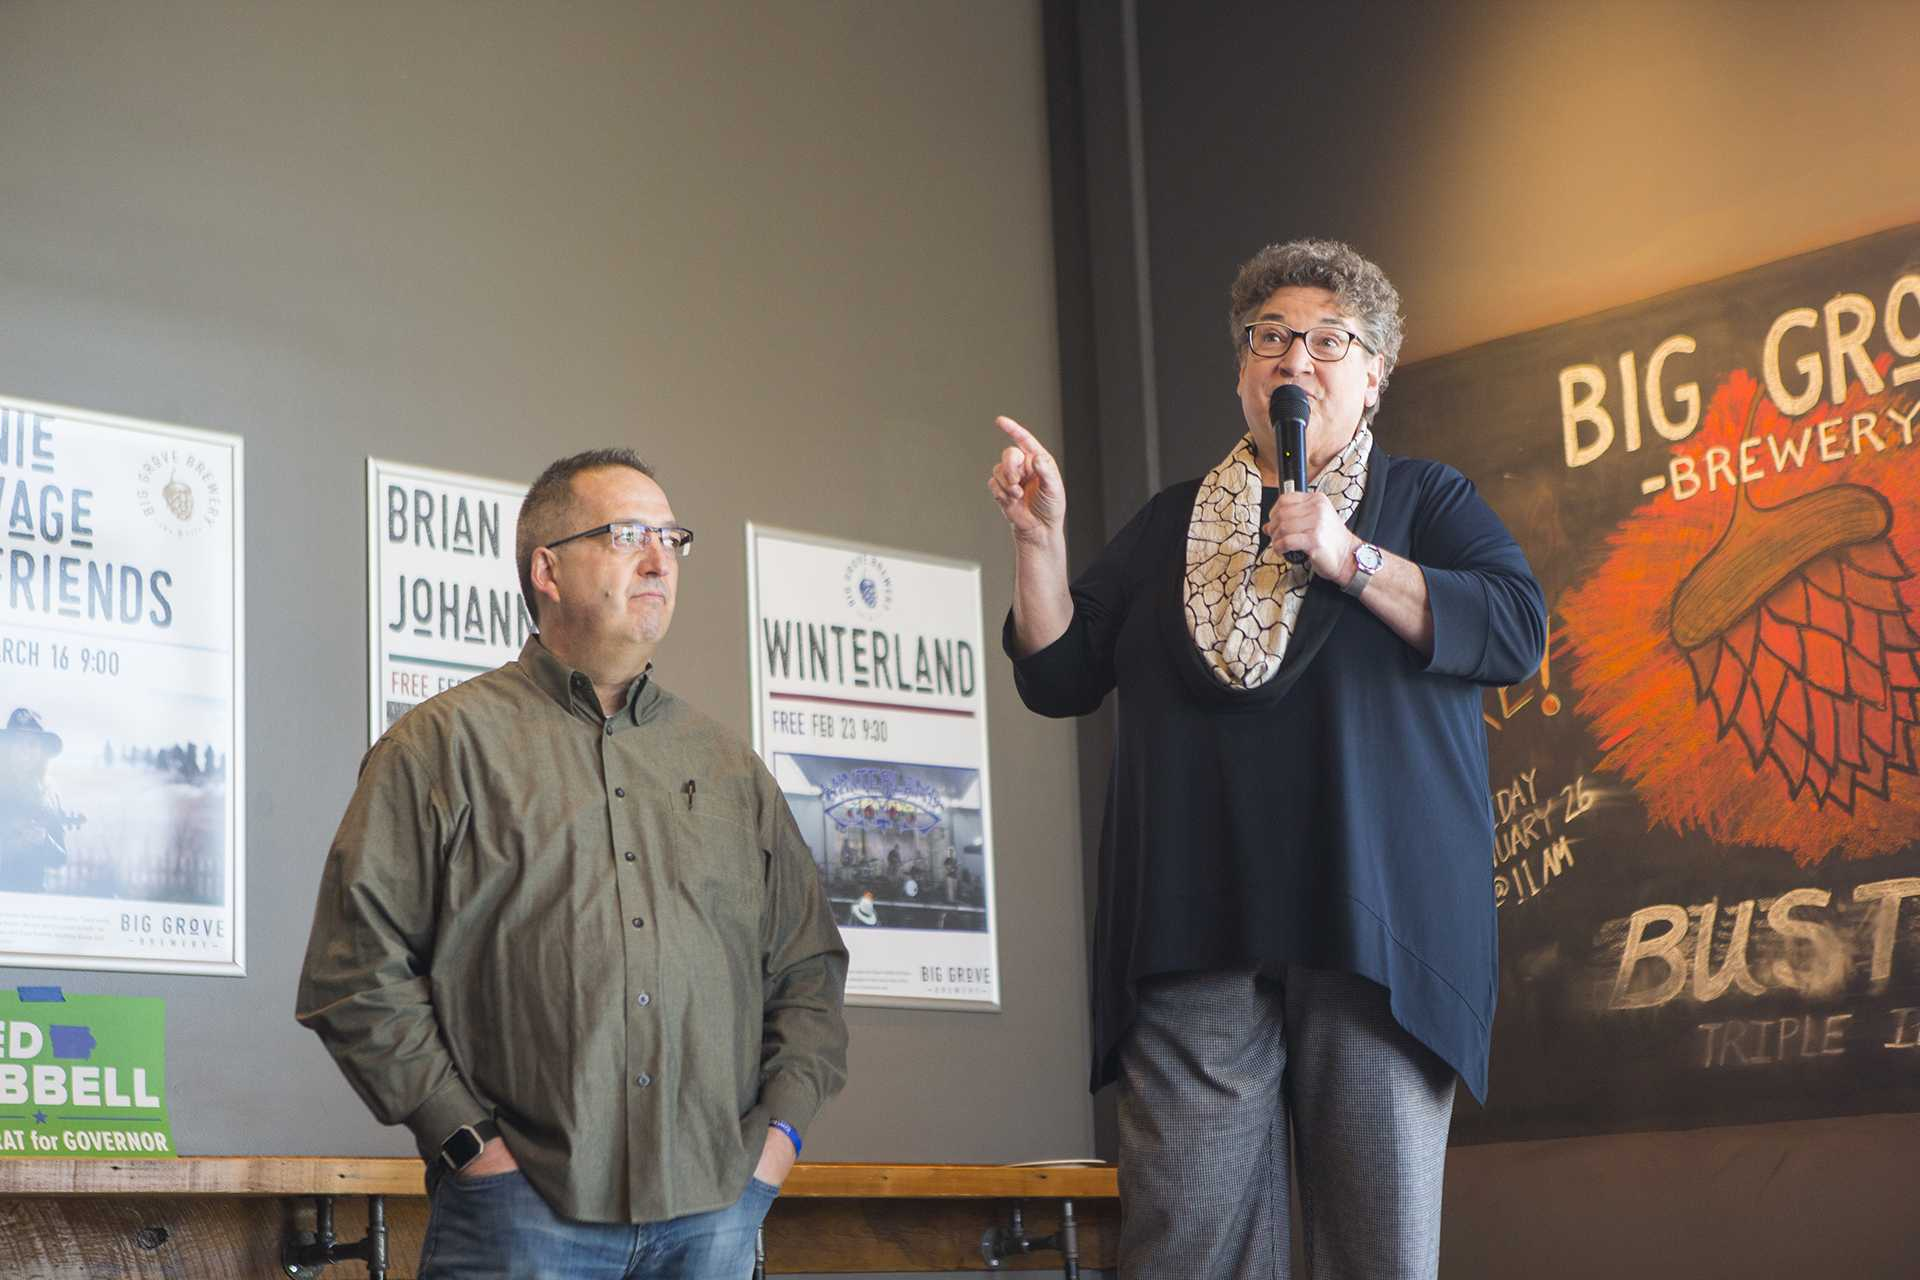 Rep. Mary Mascher, D-Iowa City, introduces Iowa Democratic gubernatorial candidate Fred Hubbell alongside Johnson Country sheriff Lonny Pulkrabek at Big Grove Brewery and Taproom on Sunday, Feb. 4, 2018. (Lily Smith/The Daily Iowan)